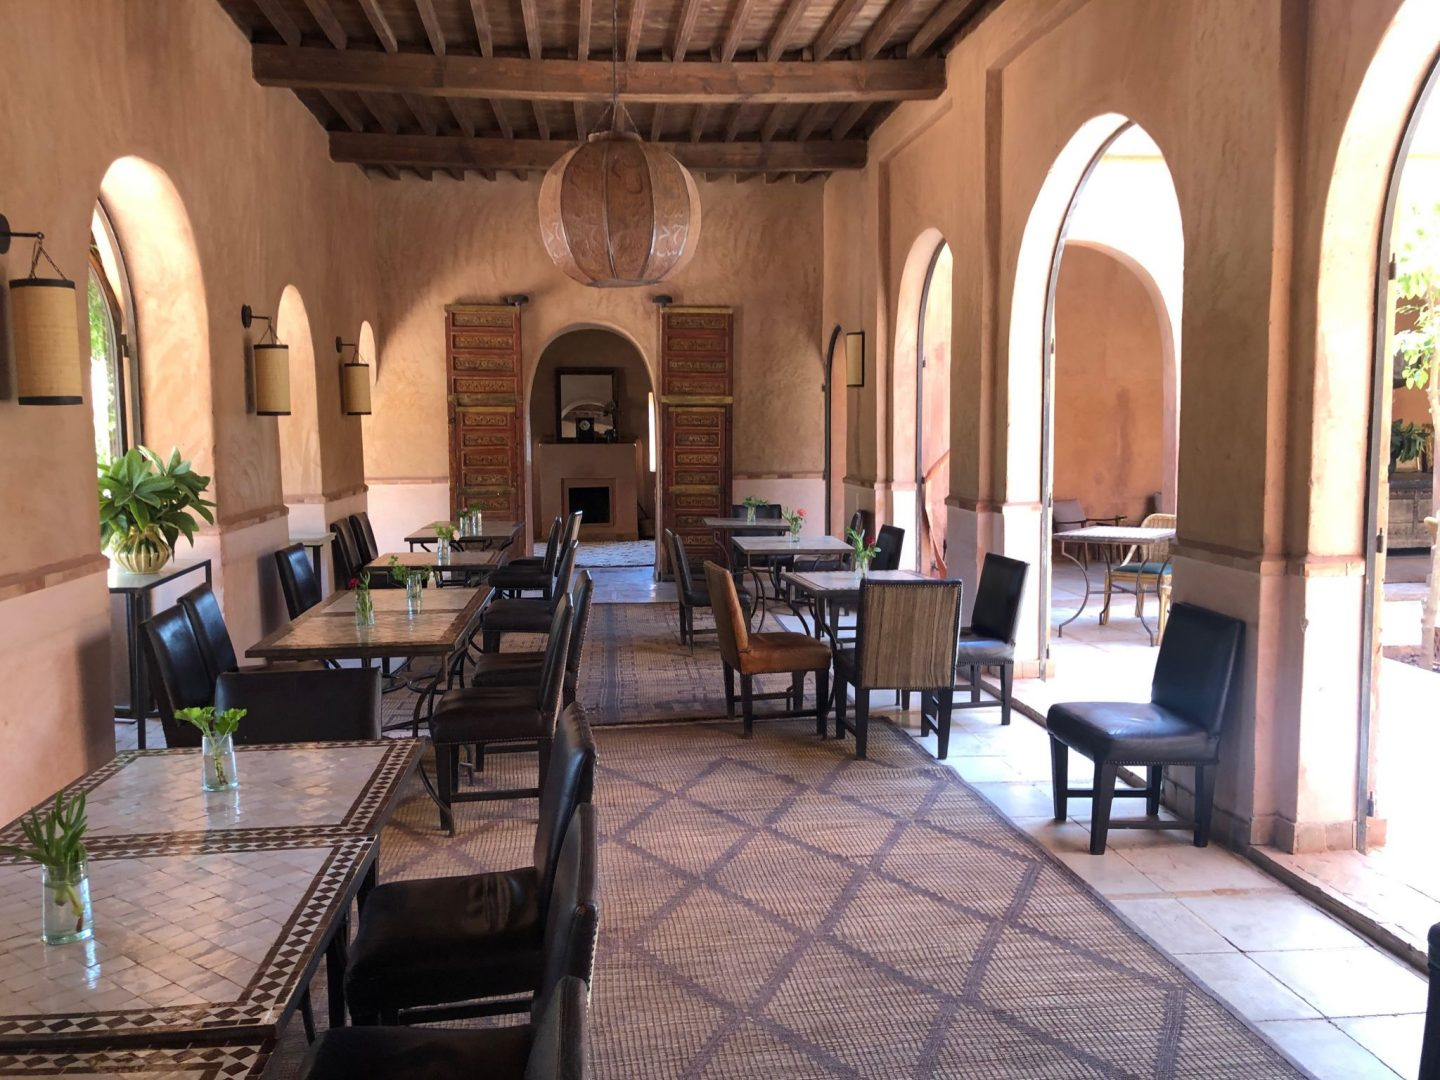 Breakfast inside the Kasbah